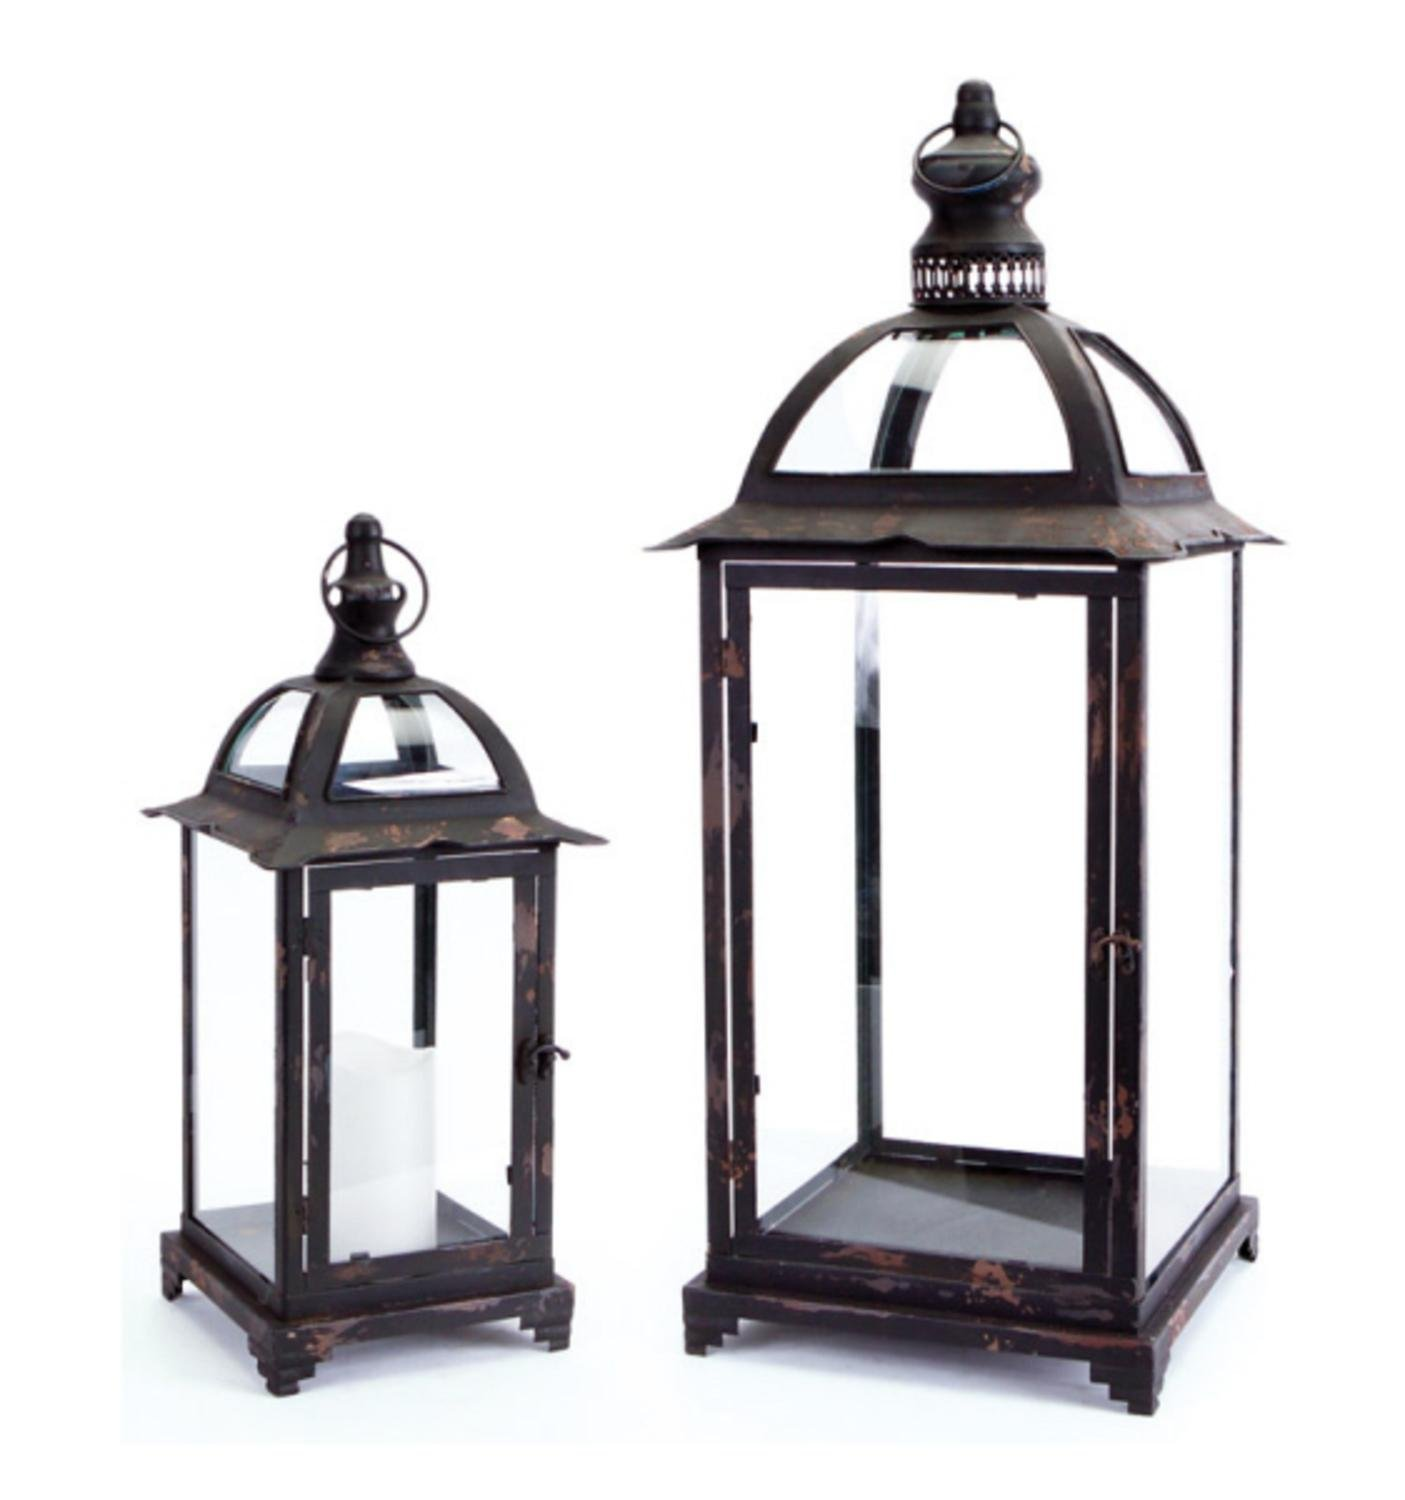 Set of 2 Pagoda Crest Weathered Iron and Glass Pillar Candle Holder Lanterns 26'' by Melrose